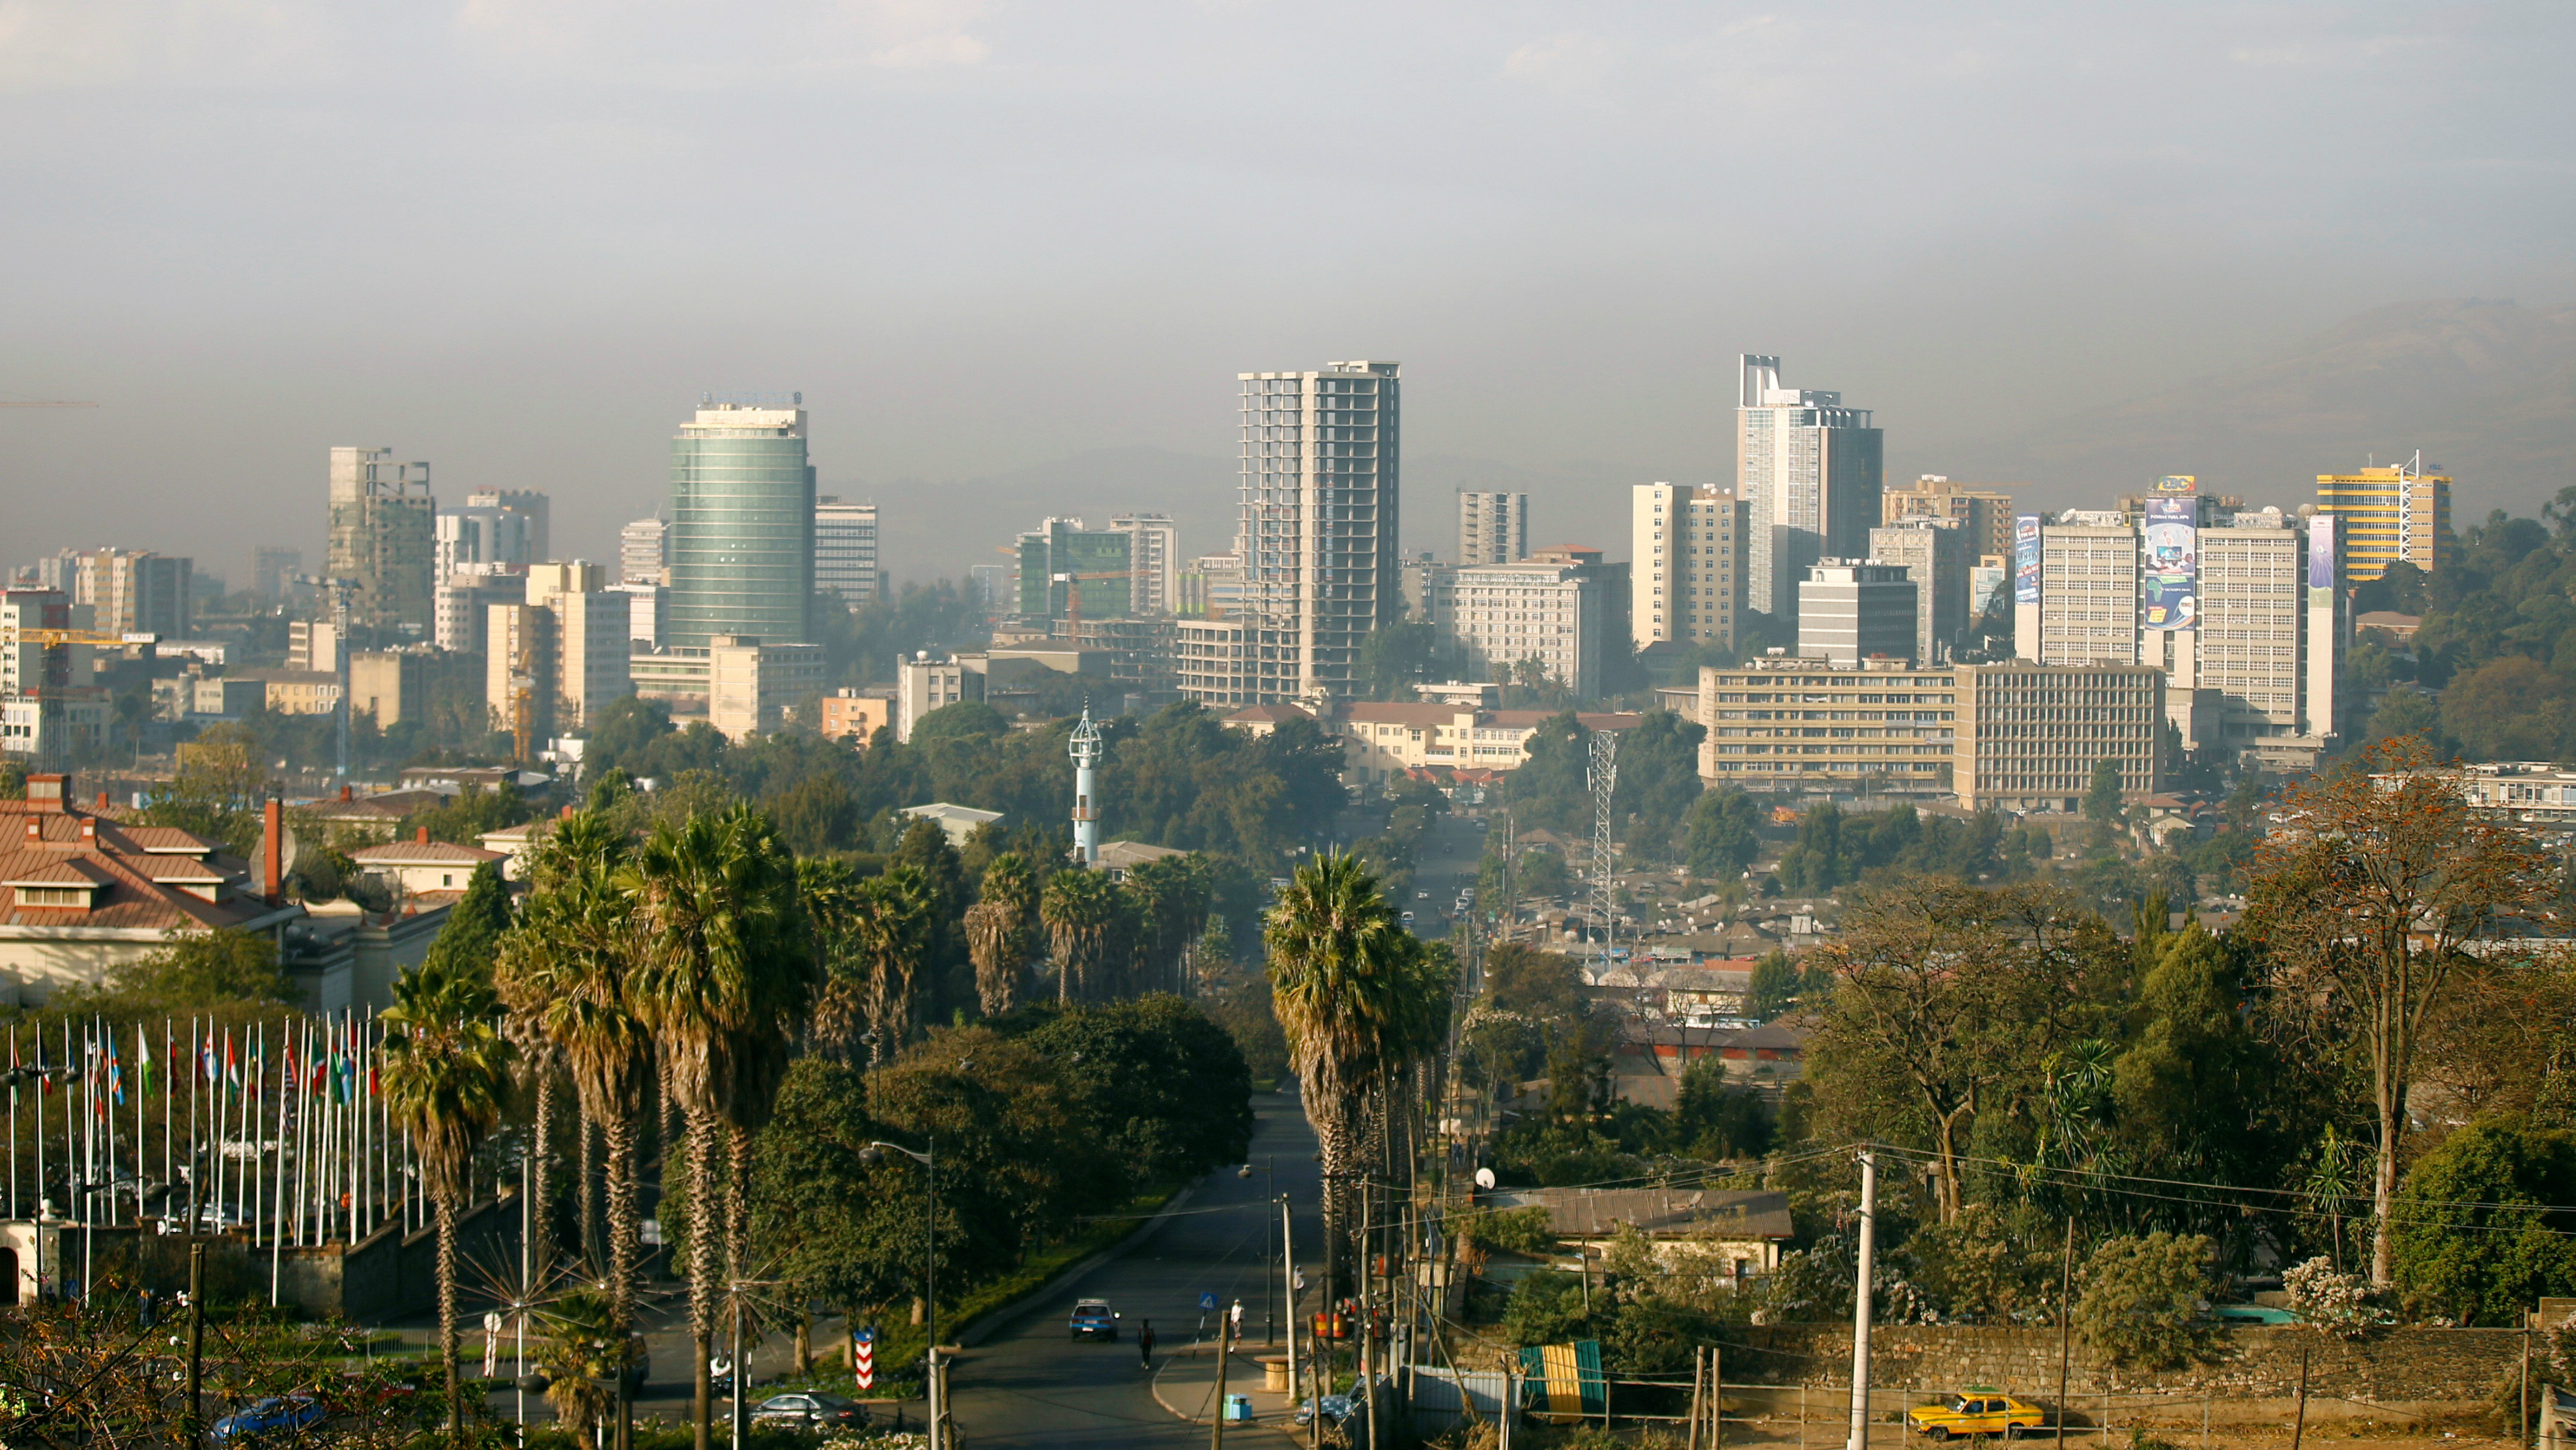 Ethiopia is one of the fastest-growing economies in the